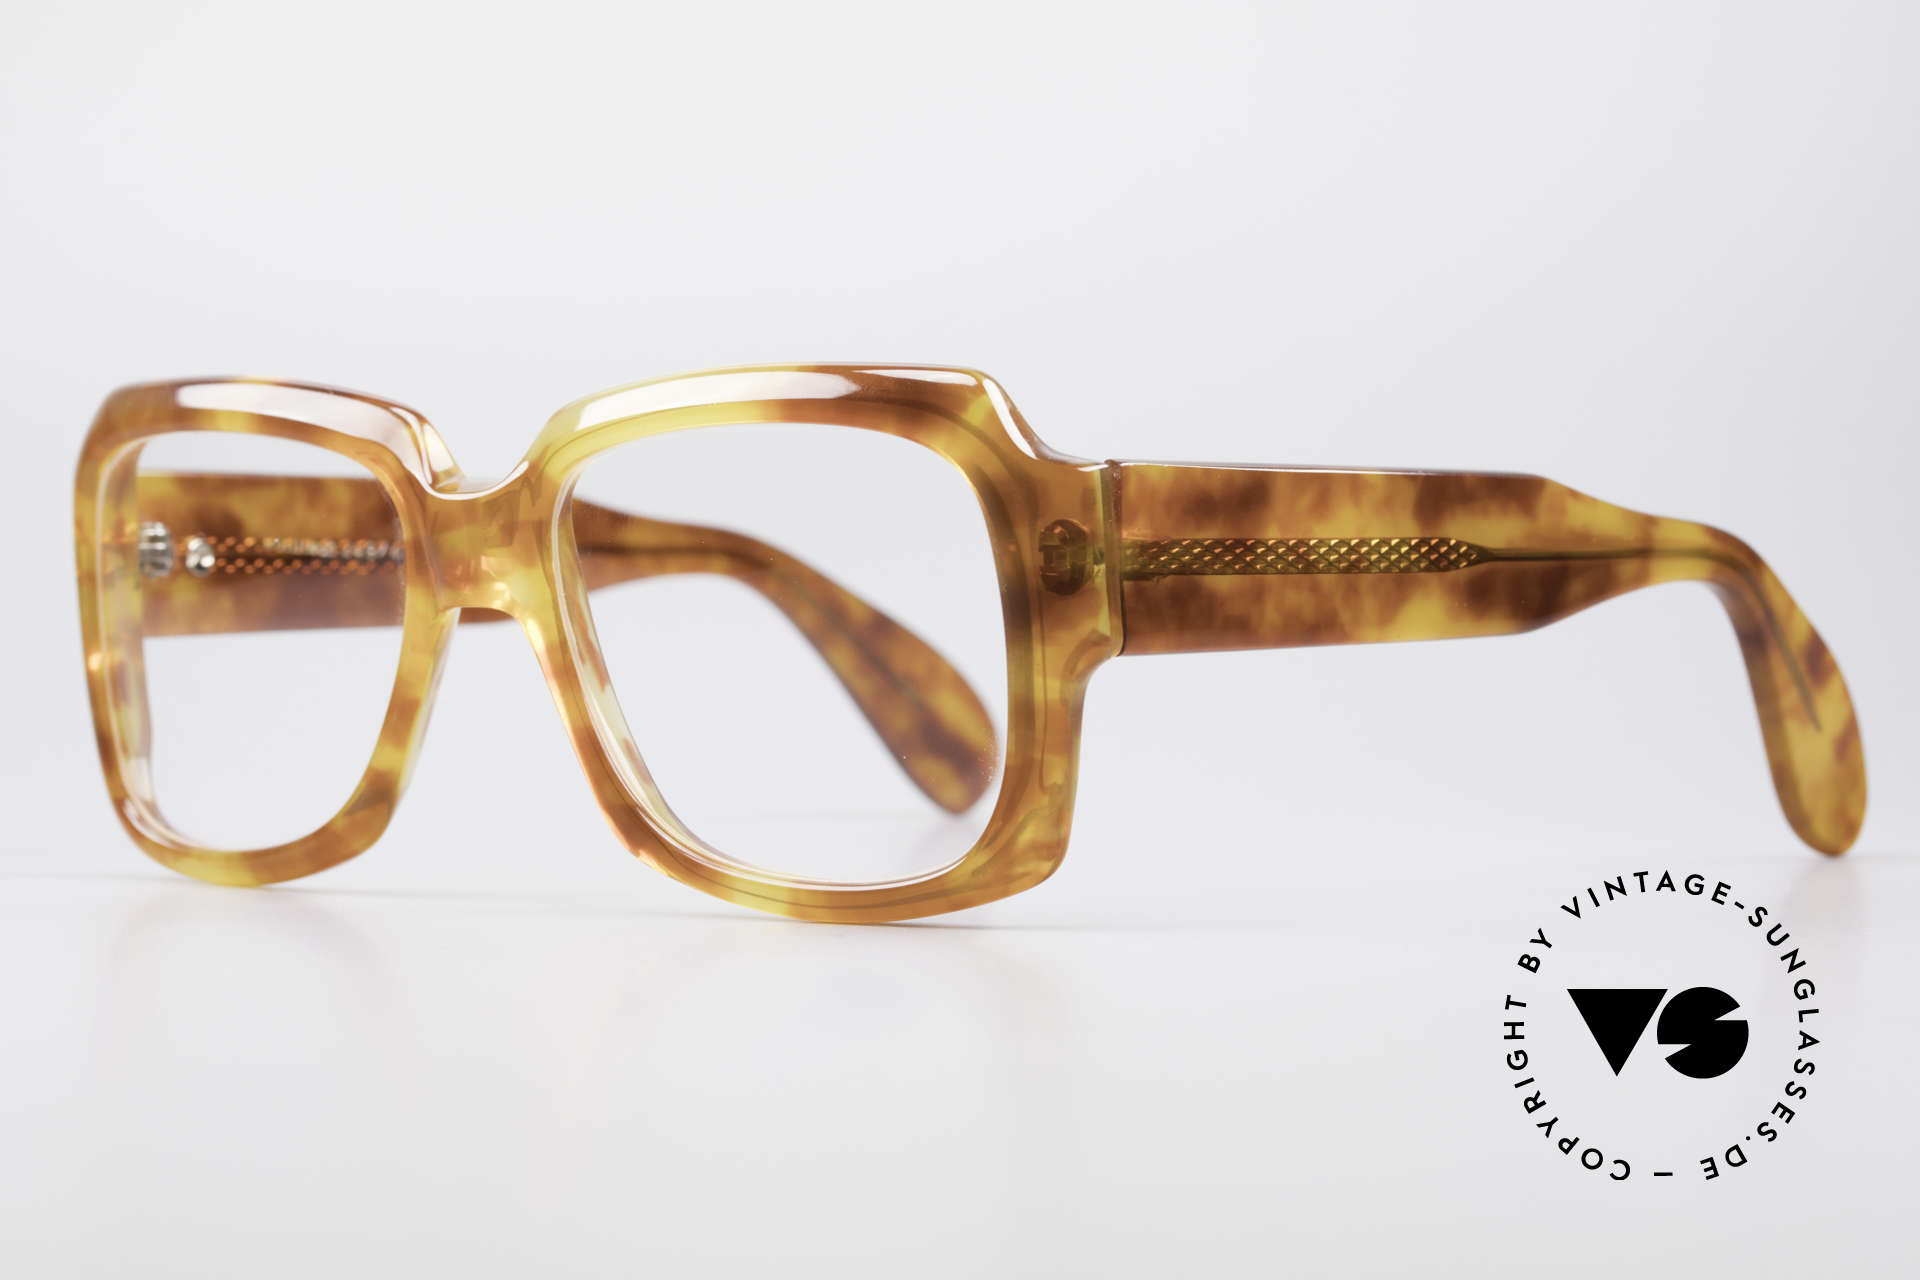 Zollitsch 249 70's Old School Eyeglasses, massive frame, monolithic, impossible to get, today, Made for Men